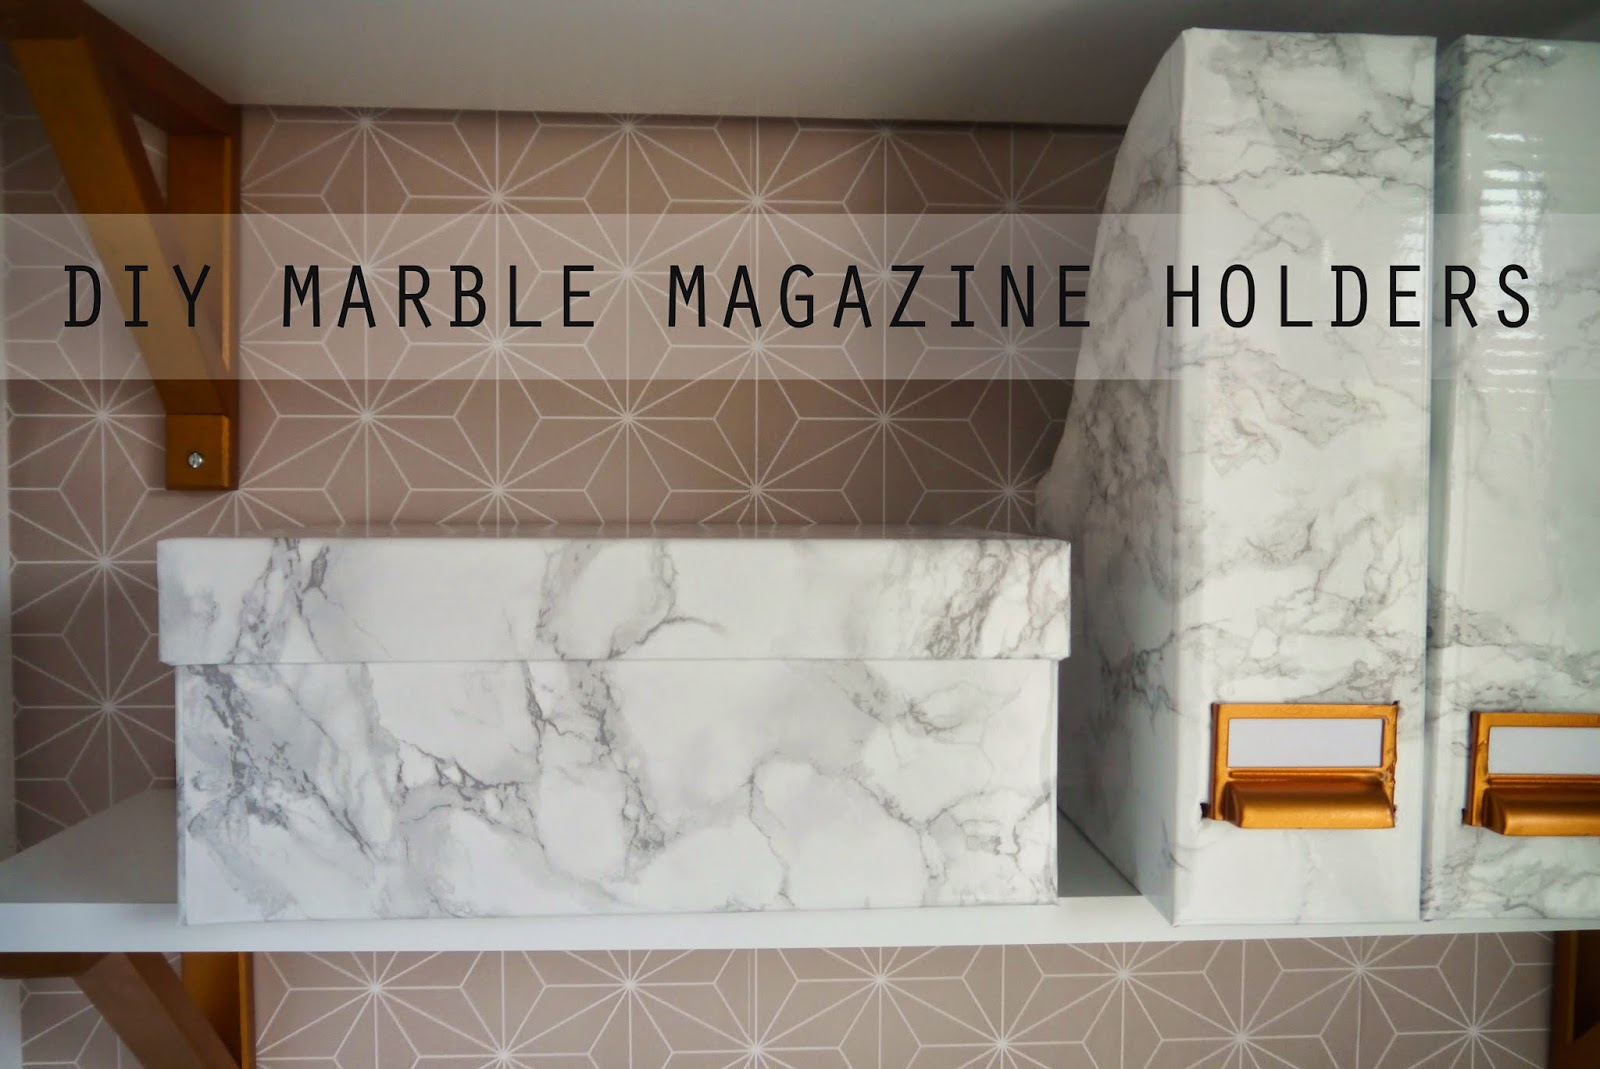 You Re Going To Need A Of Ikea S Finest Cardboard Magazine Holders For Those Asking I Used This Marble Contact Paper These Projects